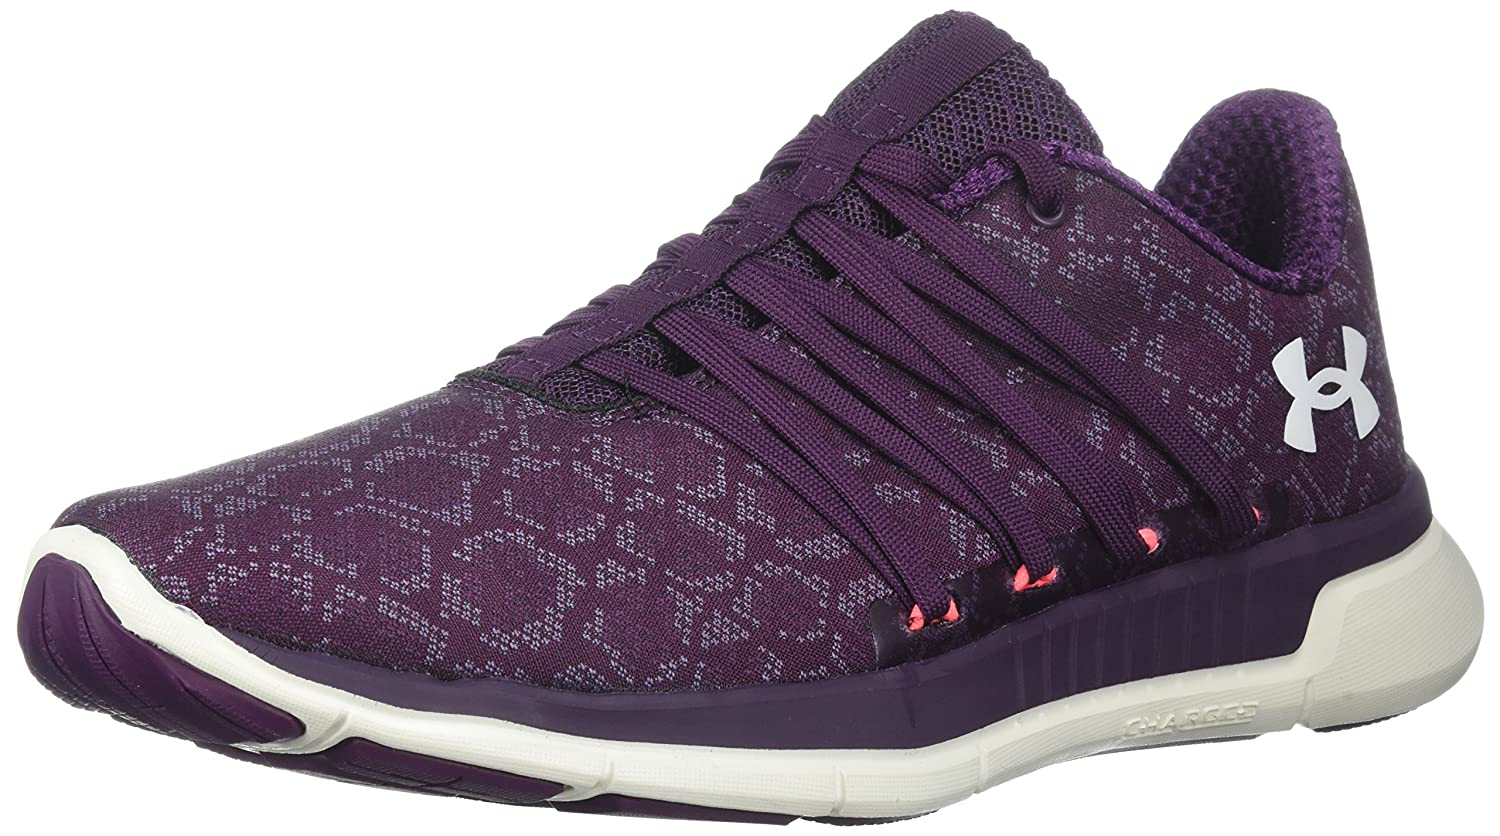 Under Armour Women's Charged Transit Running Shoe B071Z914GL 6.5 M US|Merlot (501)/Ivory